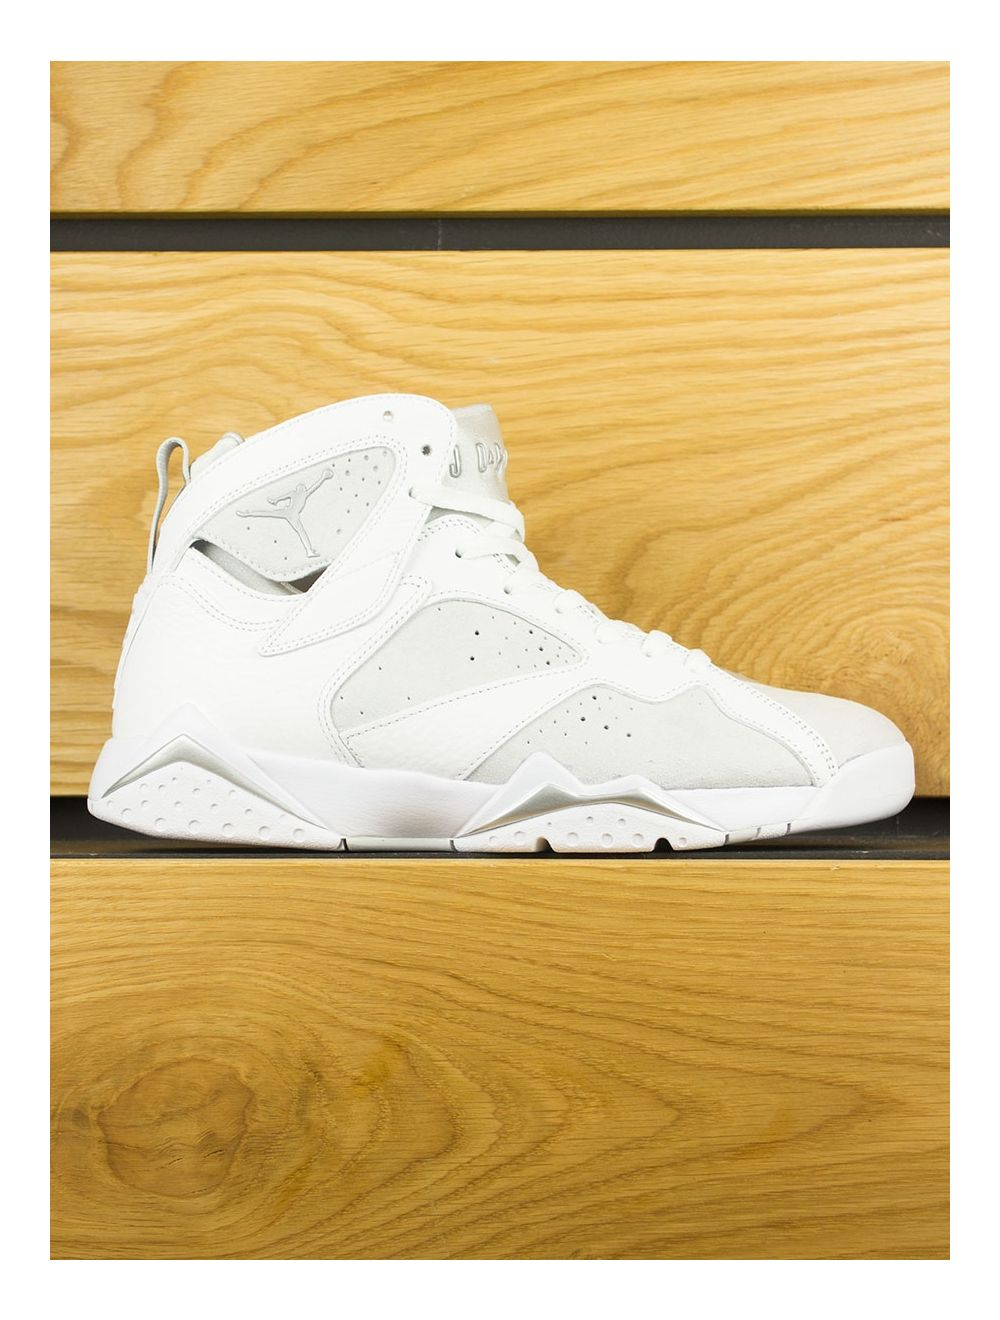 huge selection of 321e1 92187 Nike Air Jordan 7 Retro - White Metallic Silver